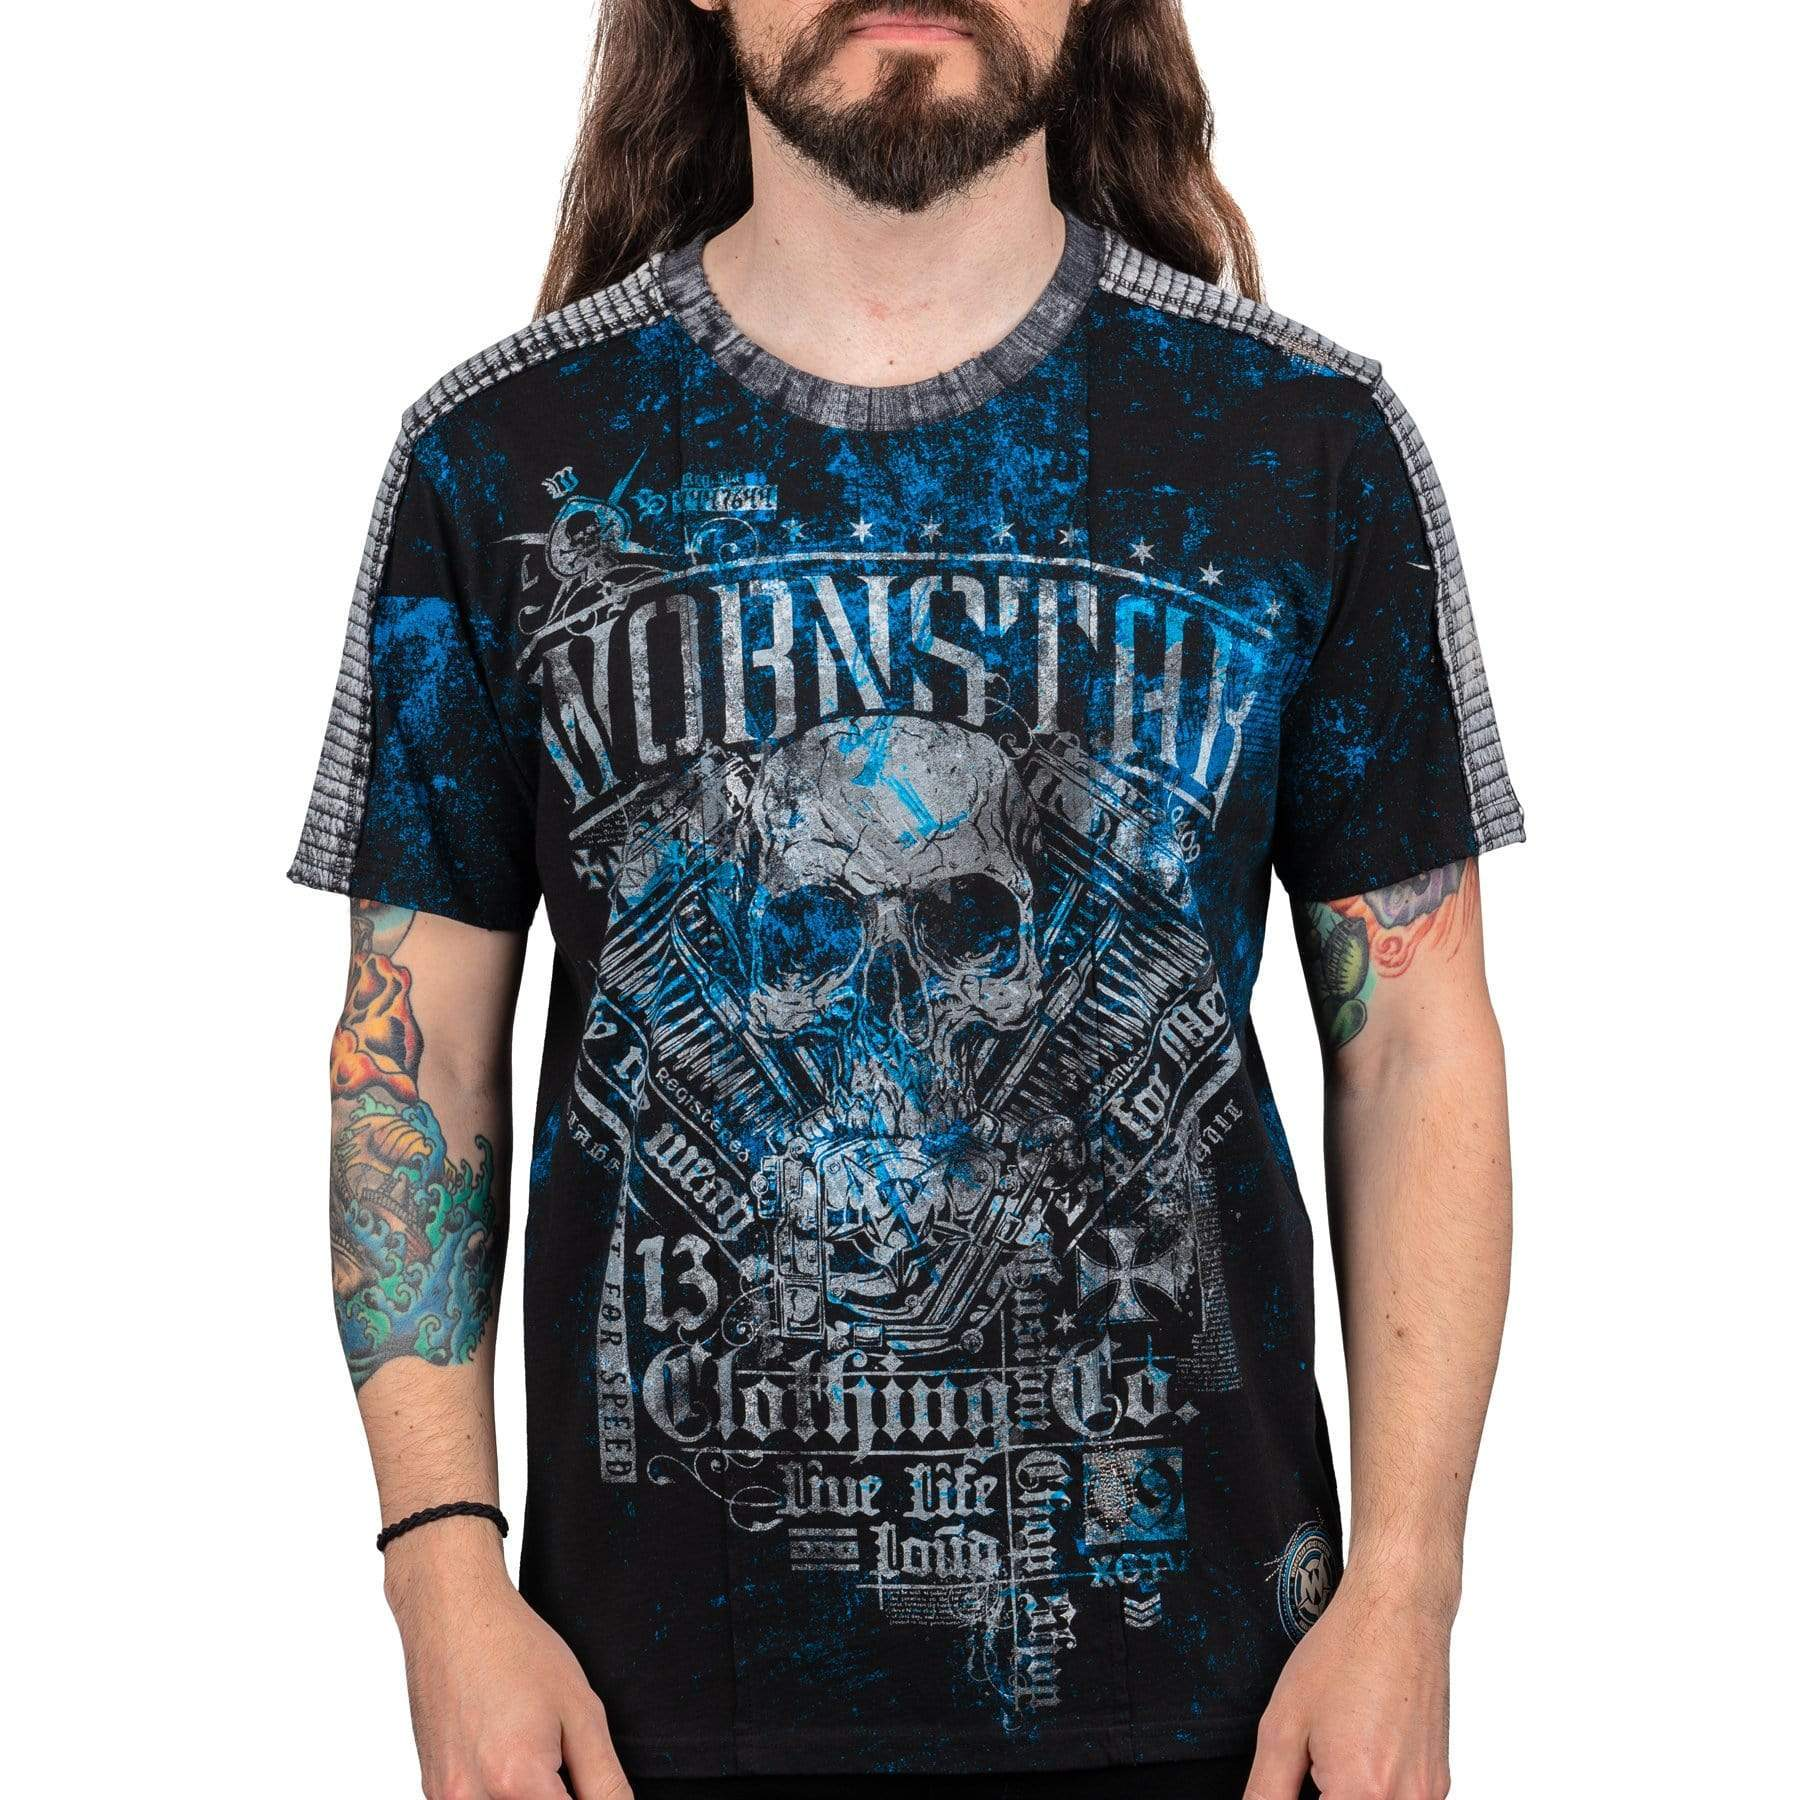 Wornstar Devil's Engine T-shirt